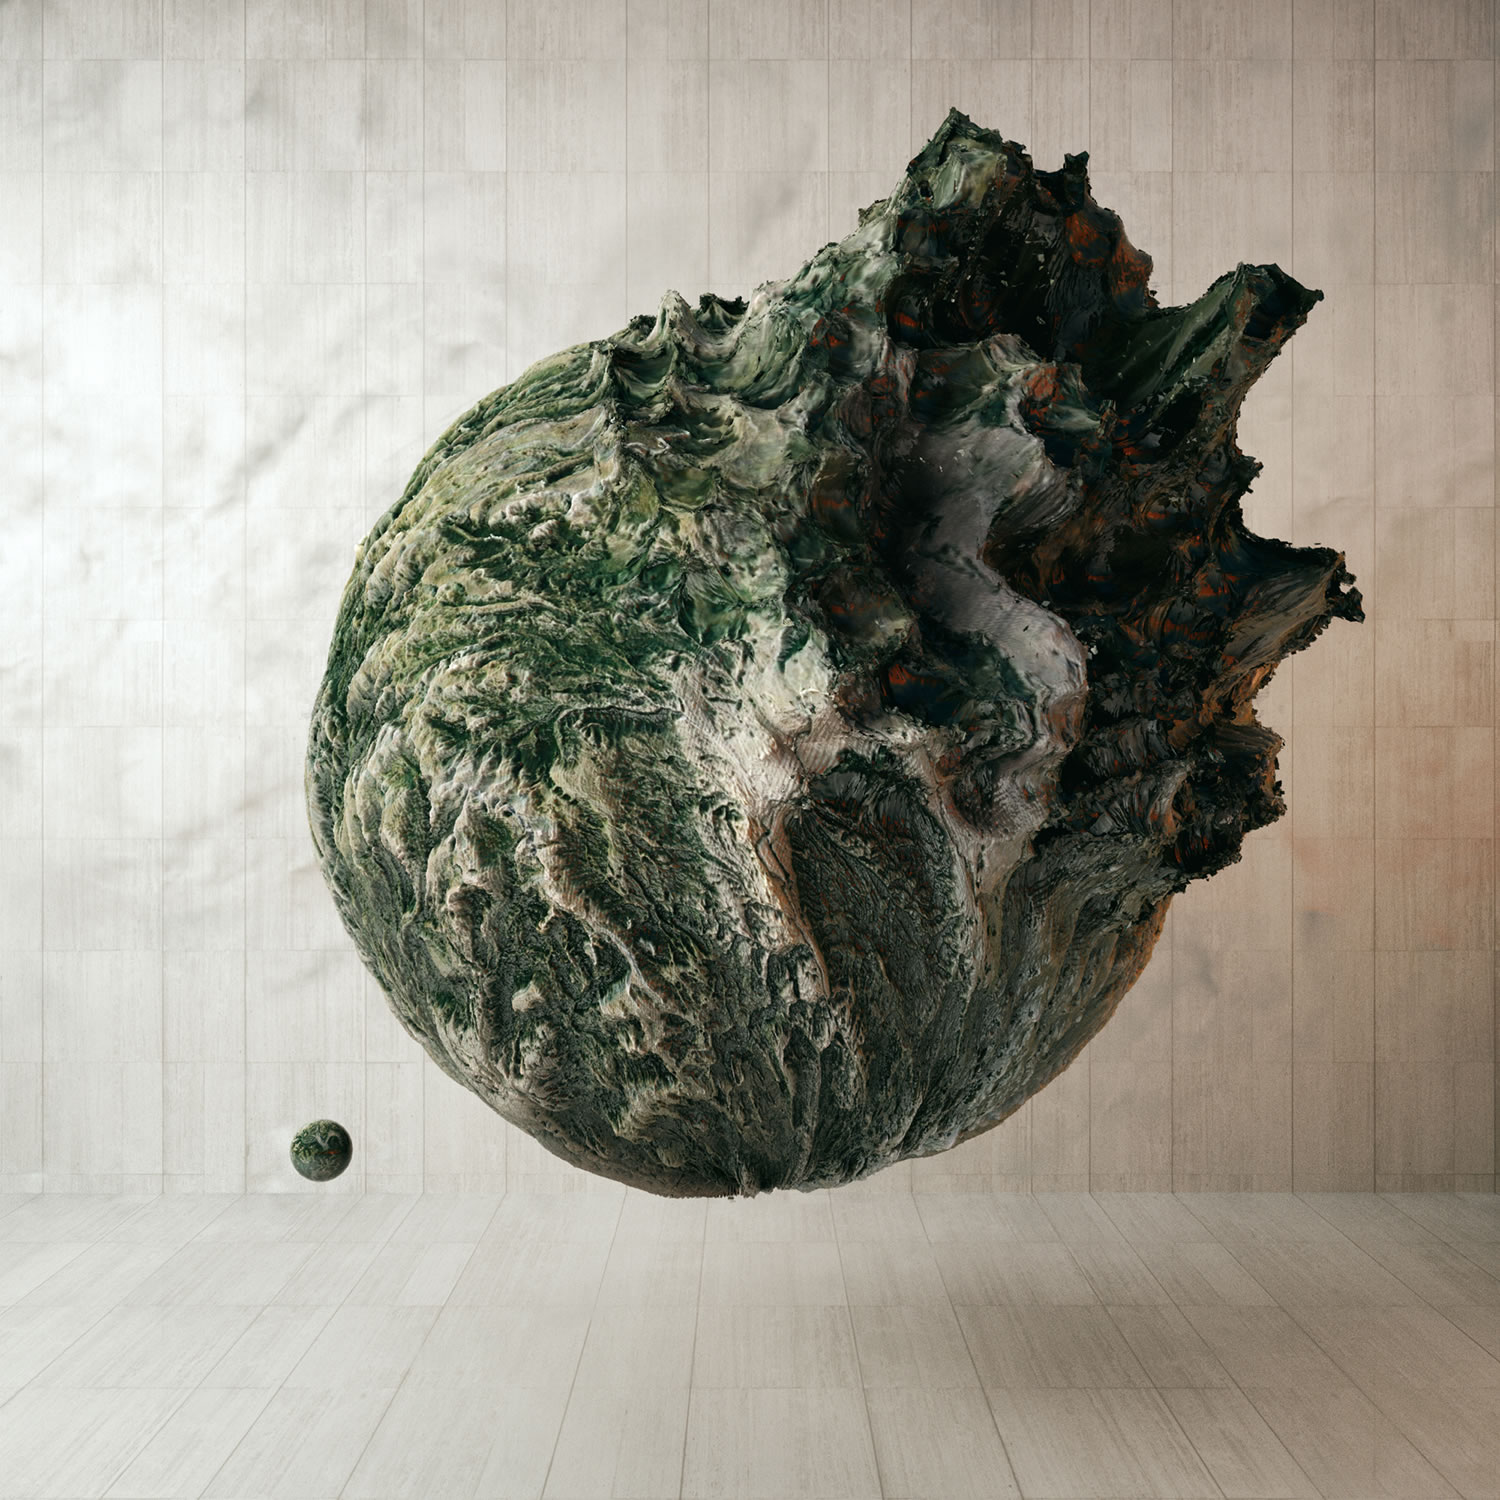 vegetated planet floating on air, outcrop, digital art